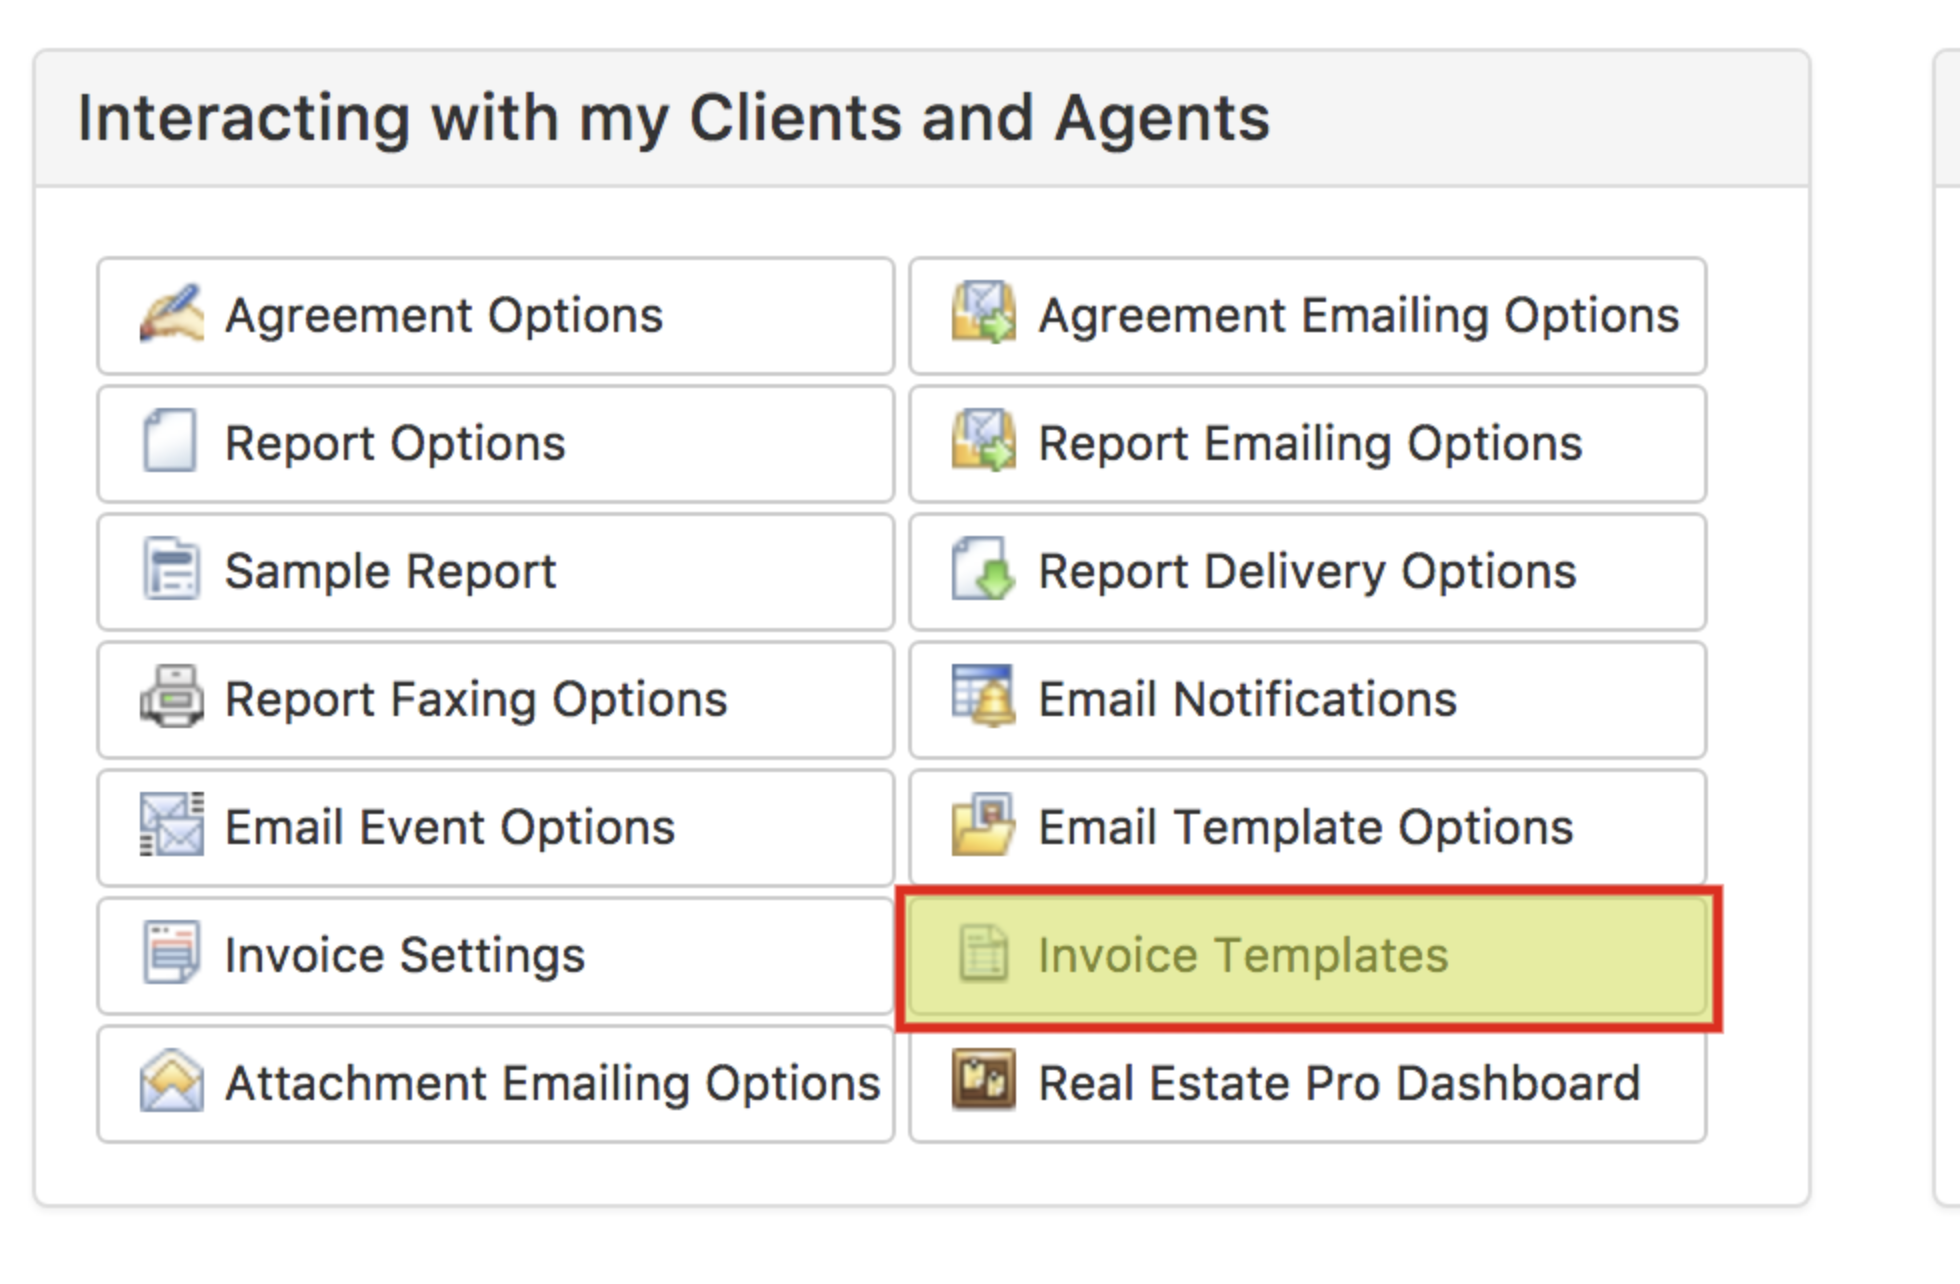 Customizing Invoice Templates Inspection Support Help Center - Event invoice template